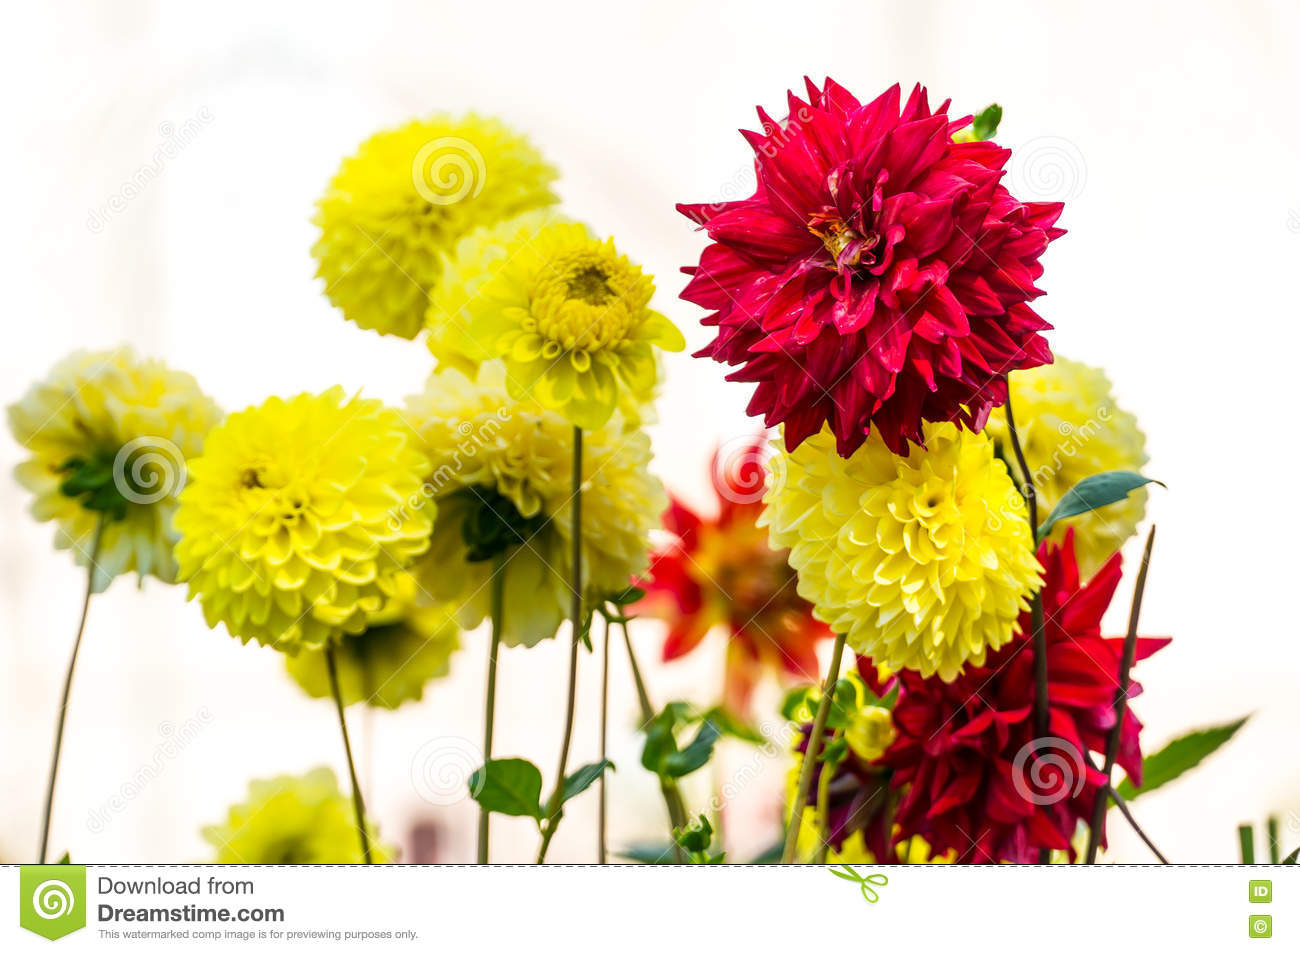 Red and yellow dahlia flower stock photo image of garden summer download red and yellow dahlia flower stock photo image of garden summer 71968690 izmirmasajfo